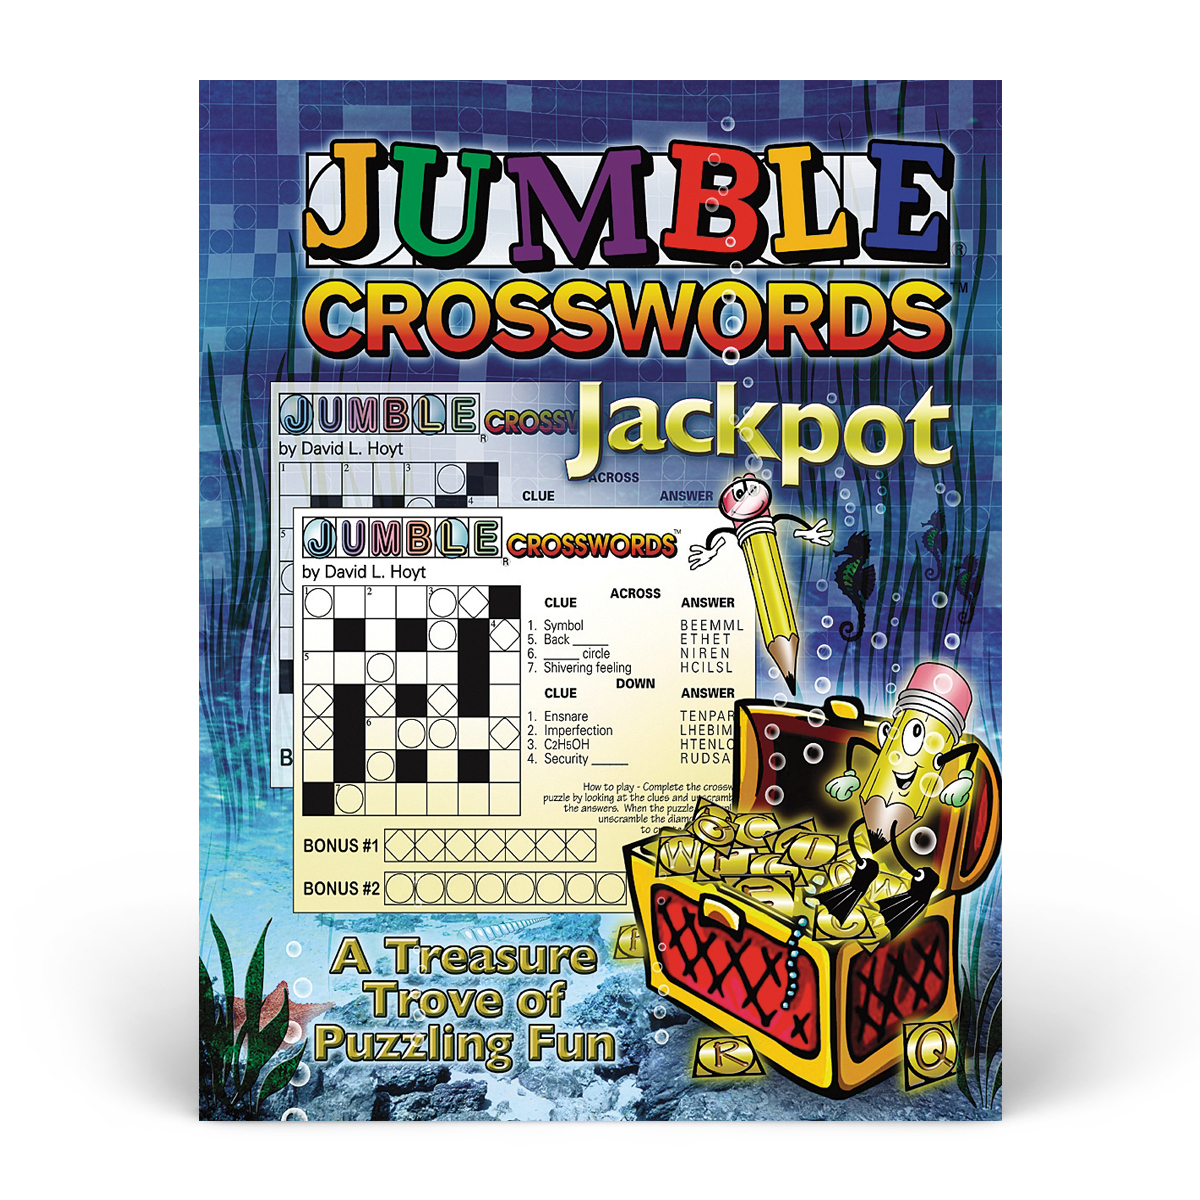 Jumble! Crosswords Jackpot